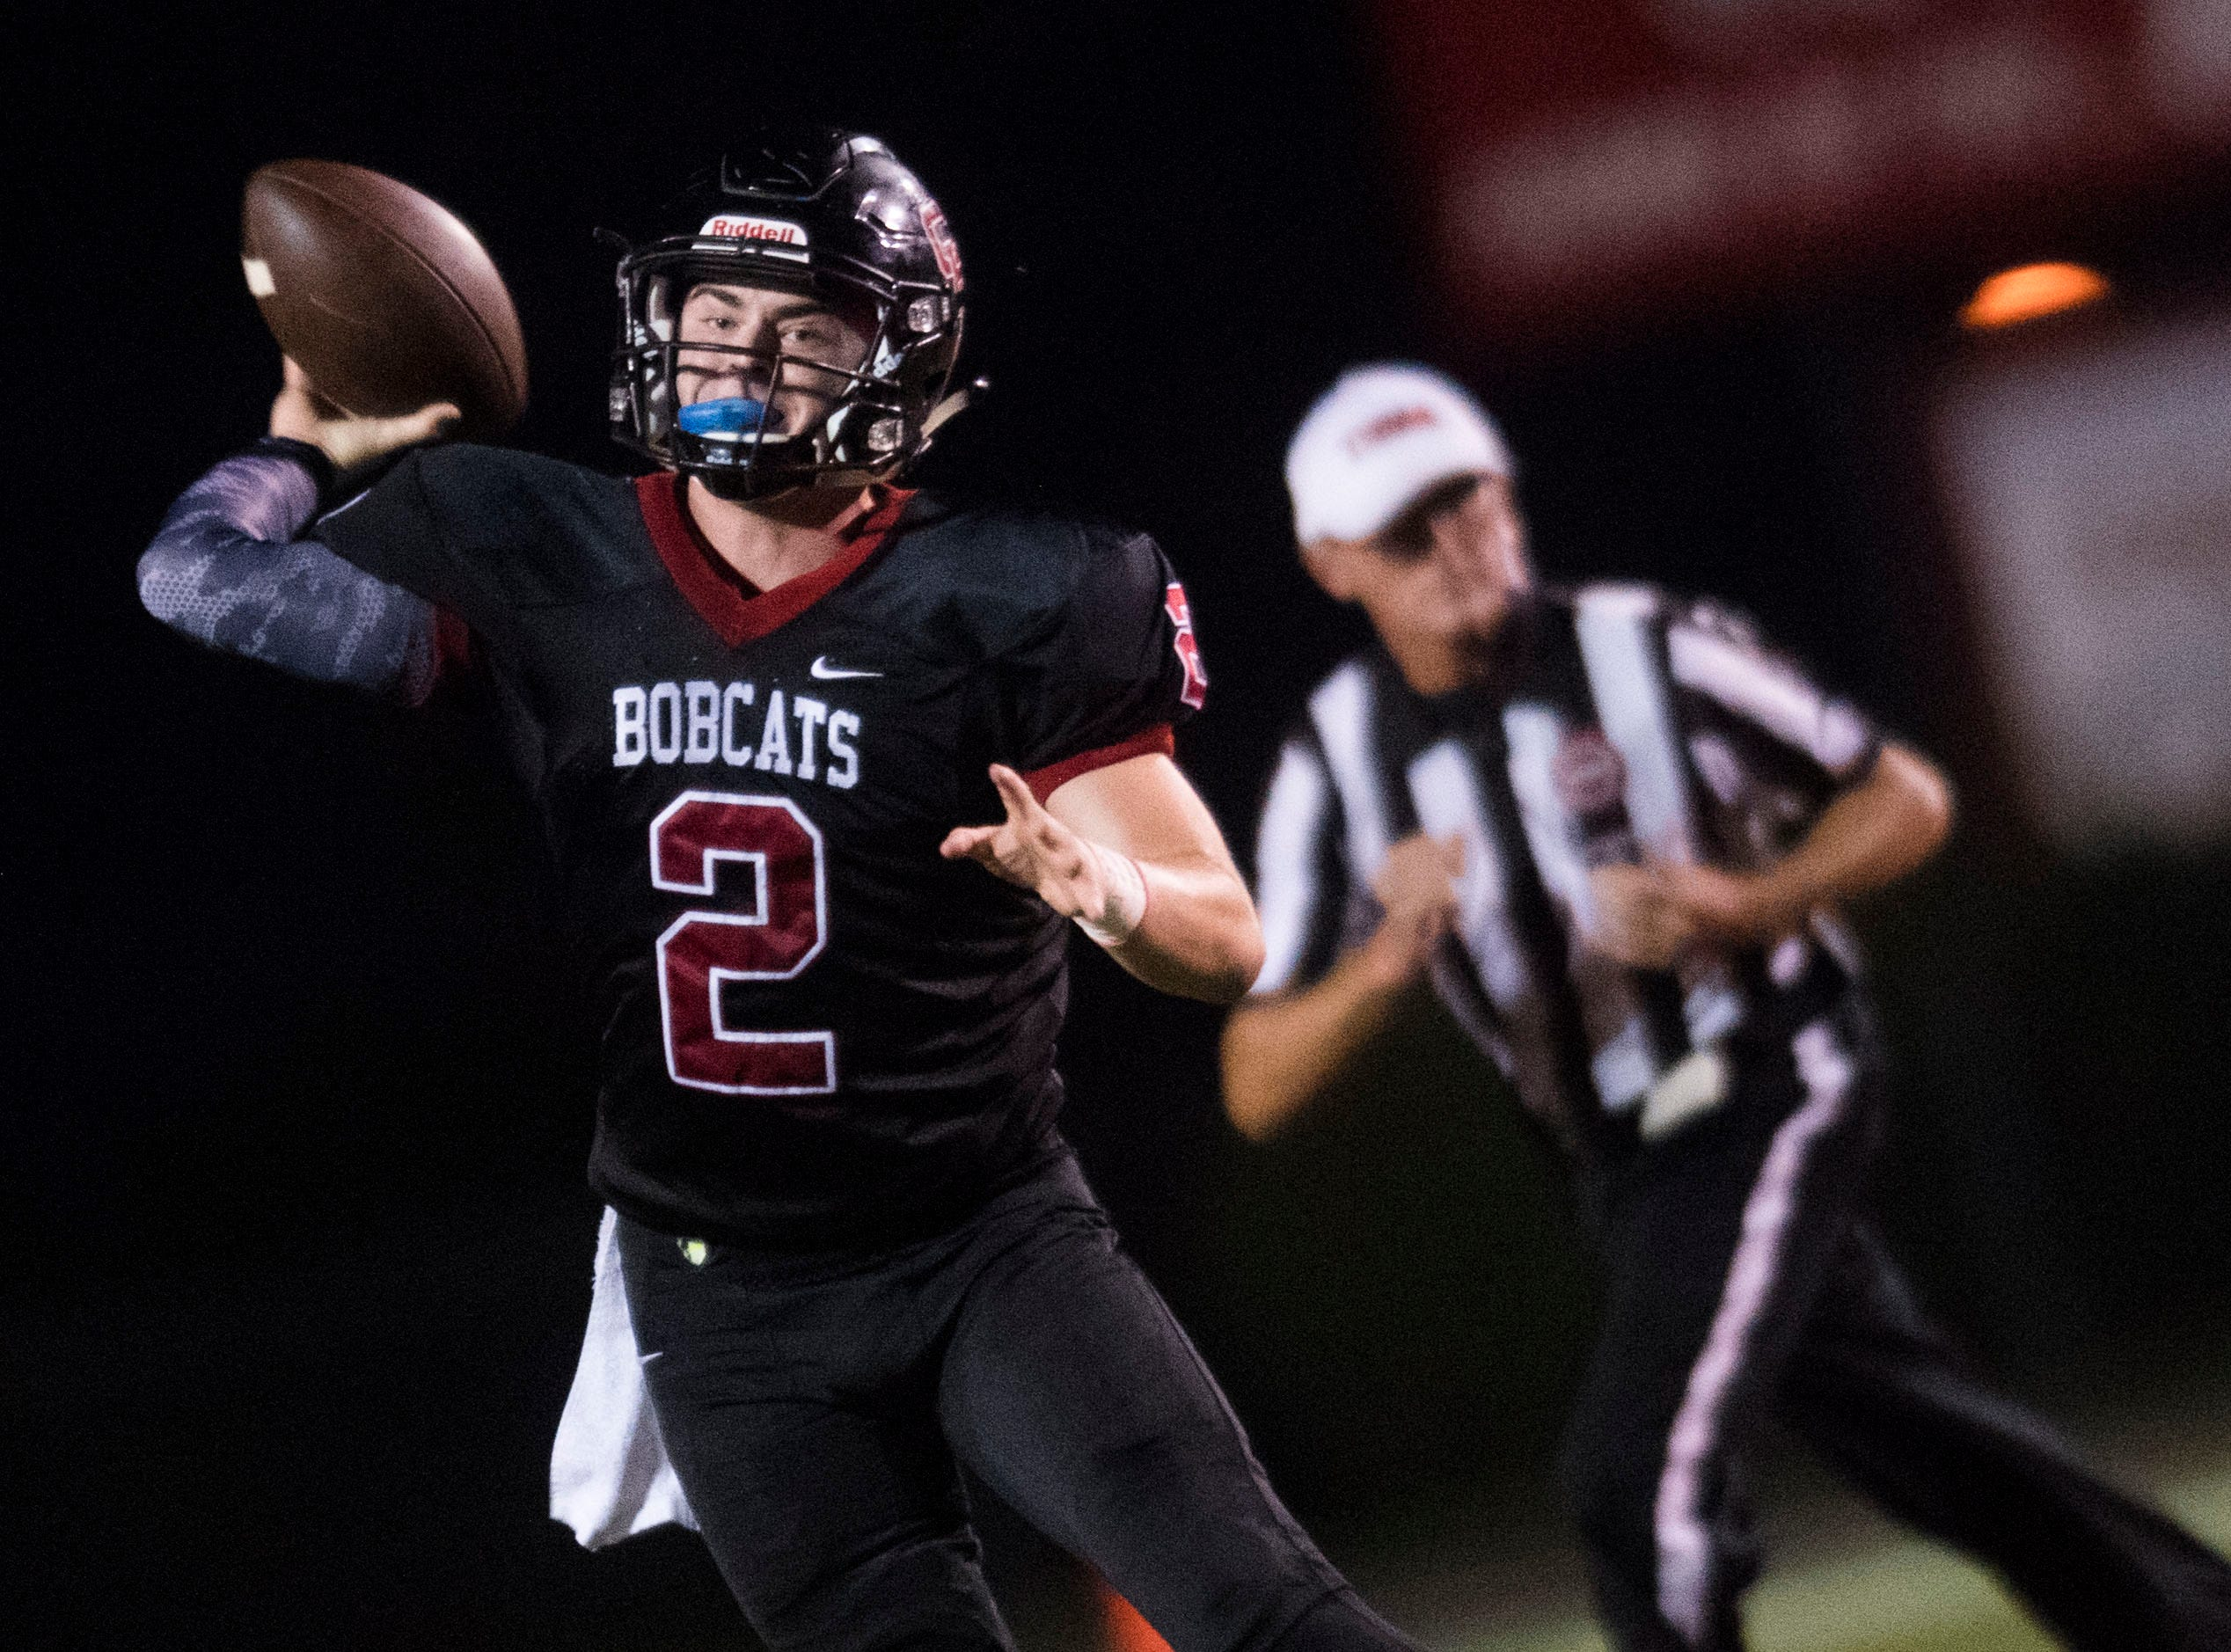 Central's Dakota Fawver (2), prepares to throw the ball during a high school football game between Central and Halls at Central Friday, Sept. 28, 2018. Central won 49-17.